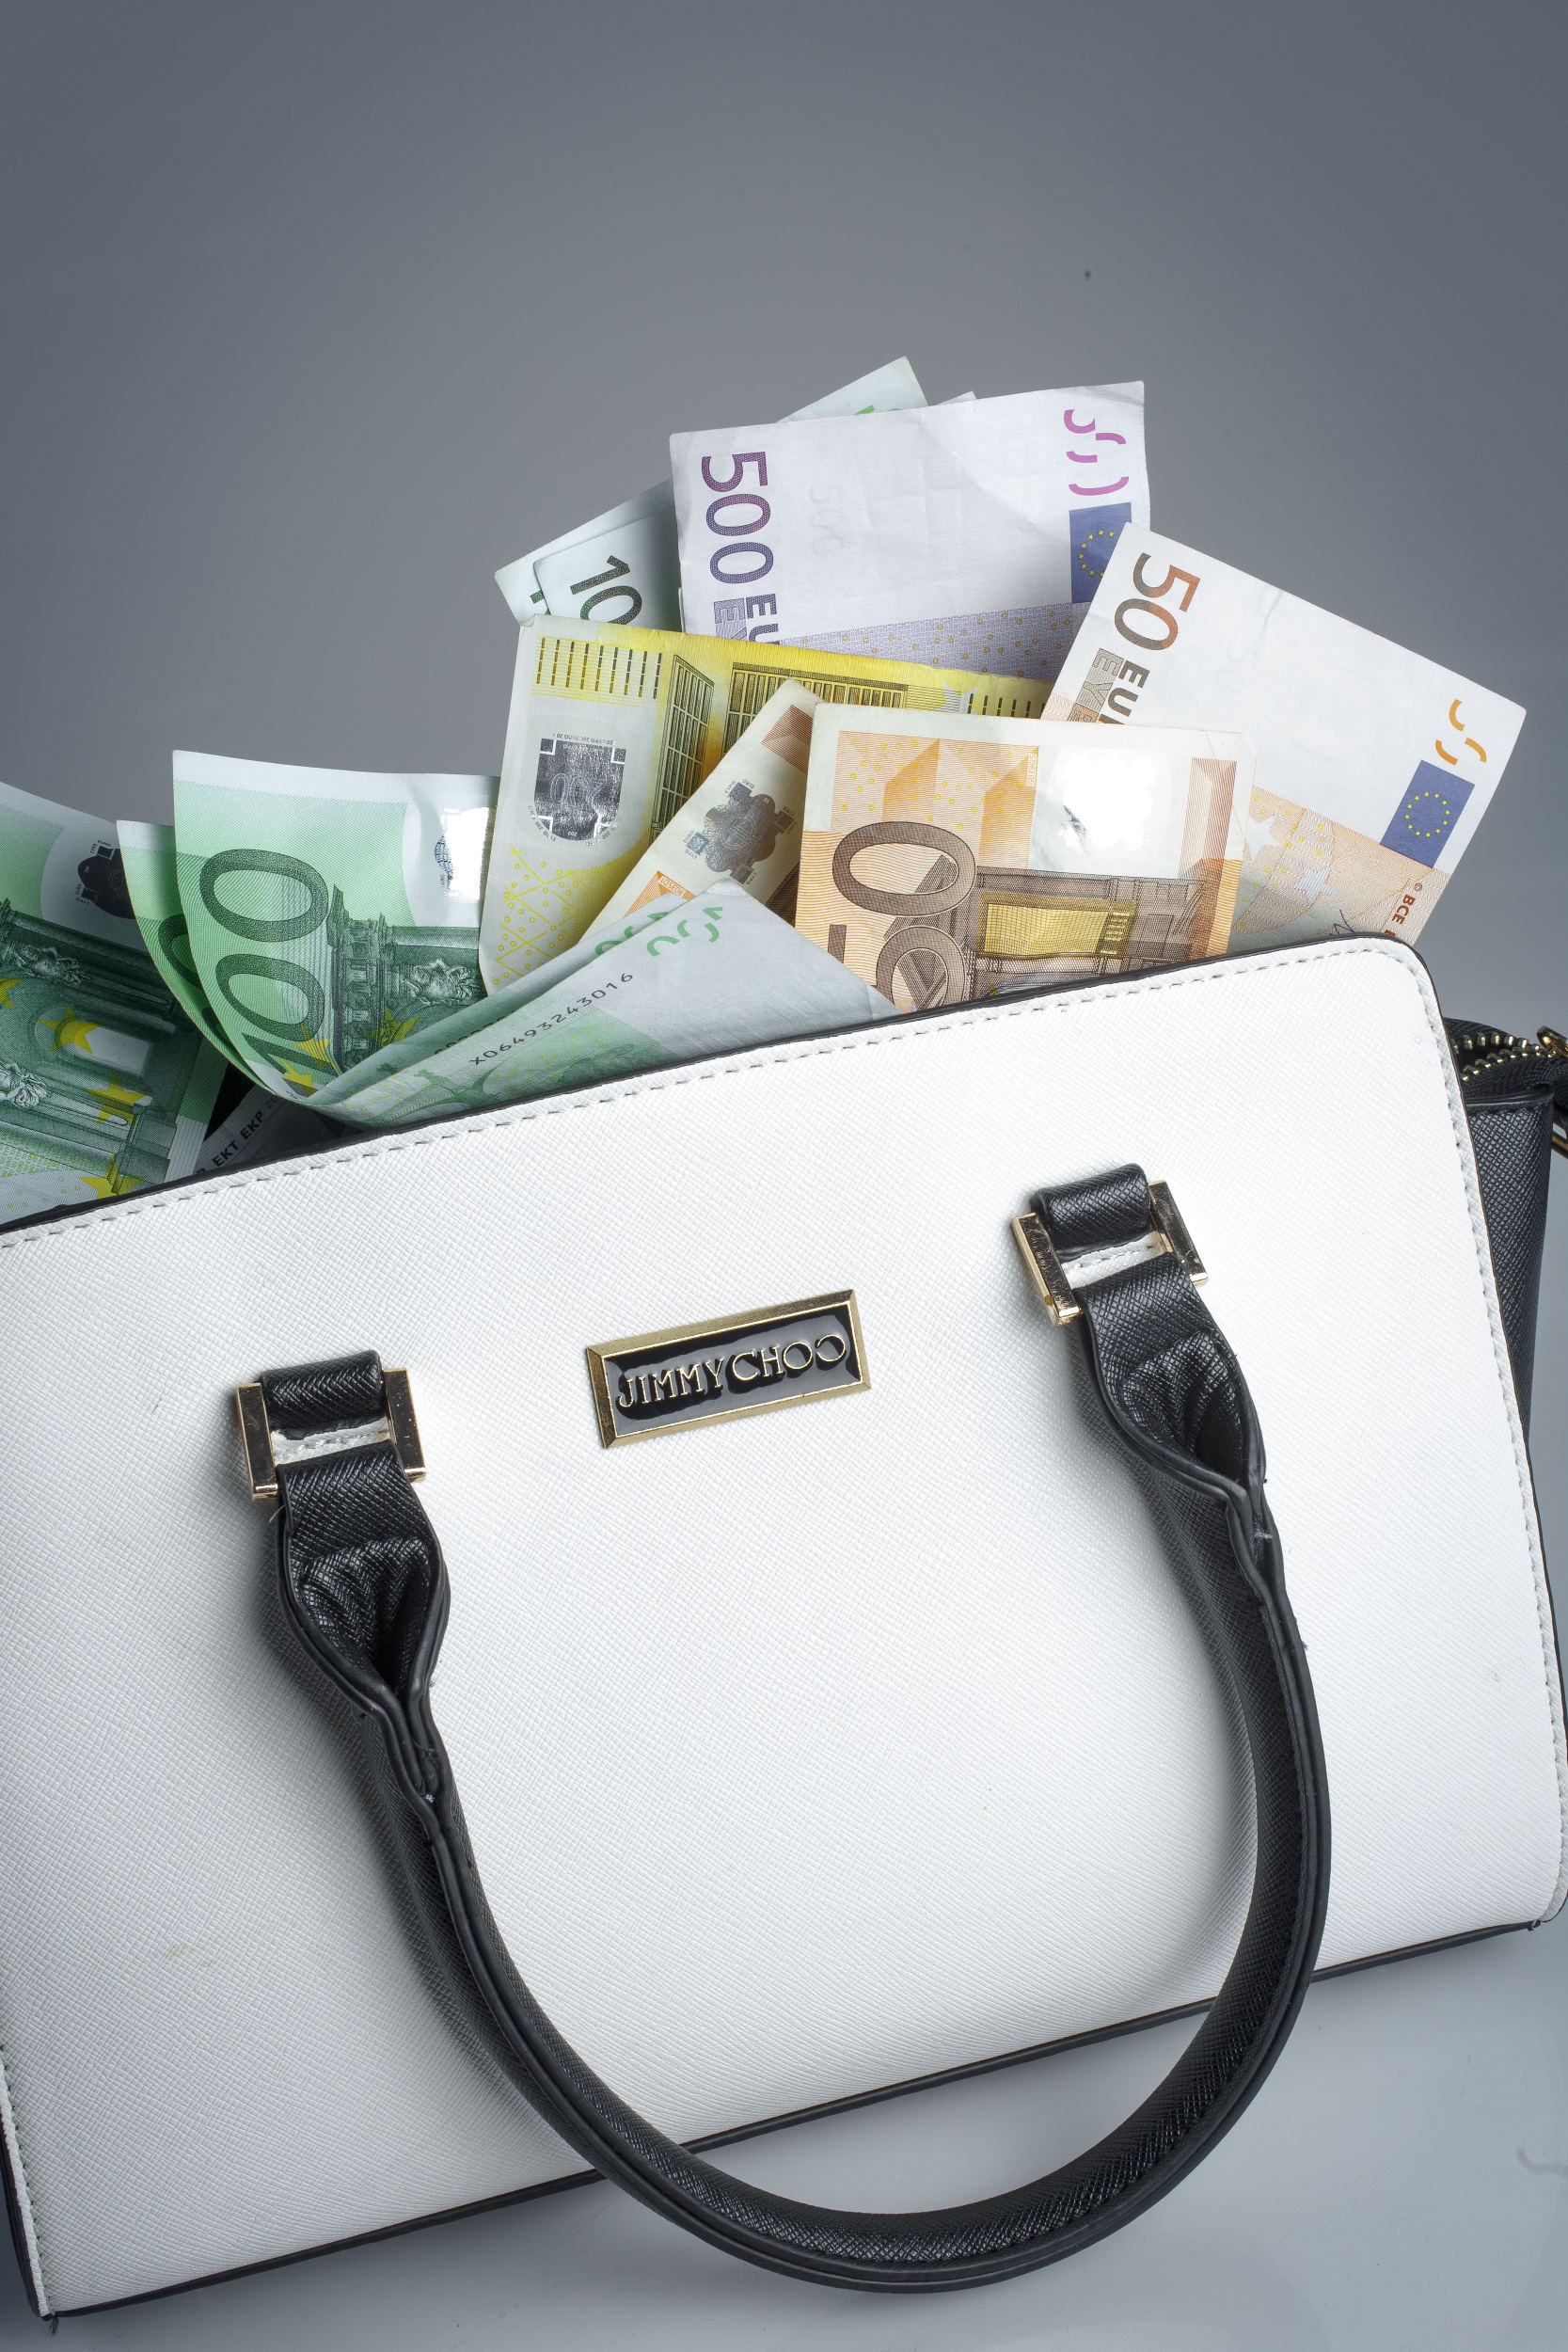 geld, money, sparen, savings, spaarpot, tas, bag, briefgeld, papiergeld, bills, briefje, contant, cash, Jimmy Choo